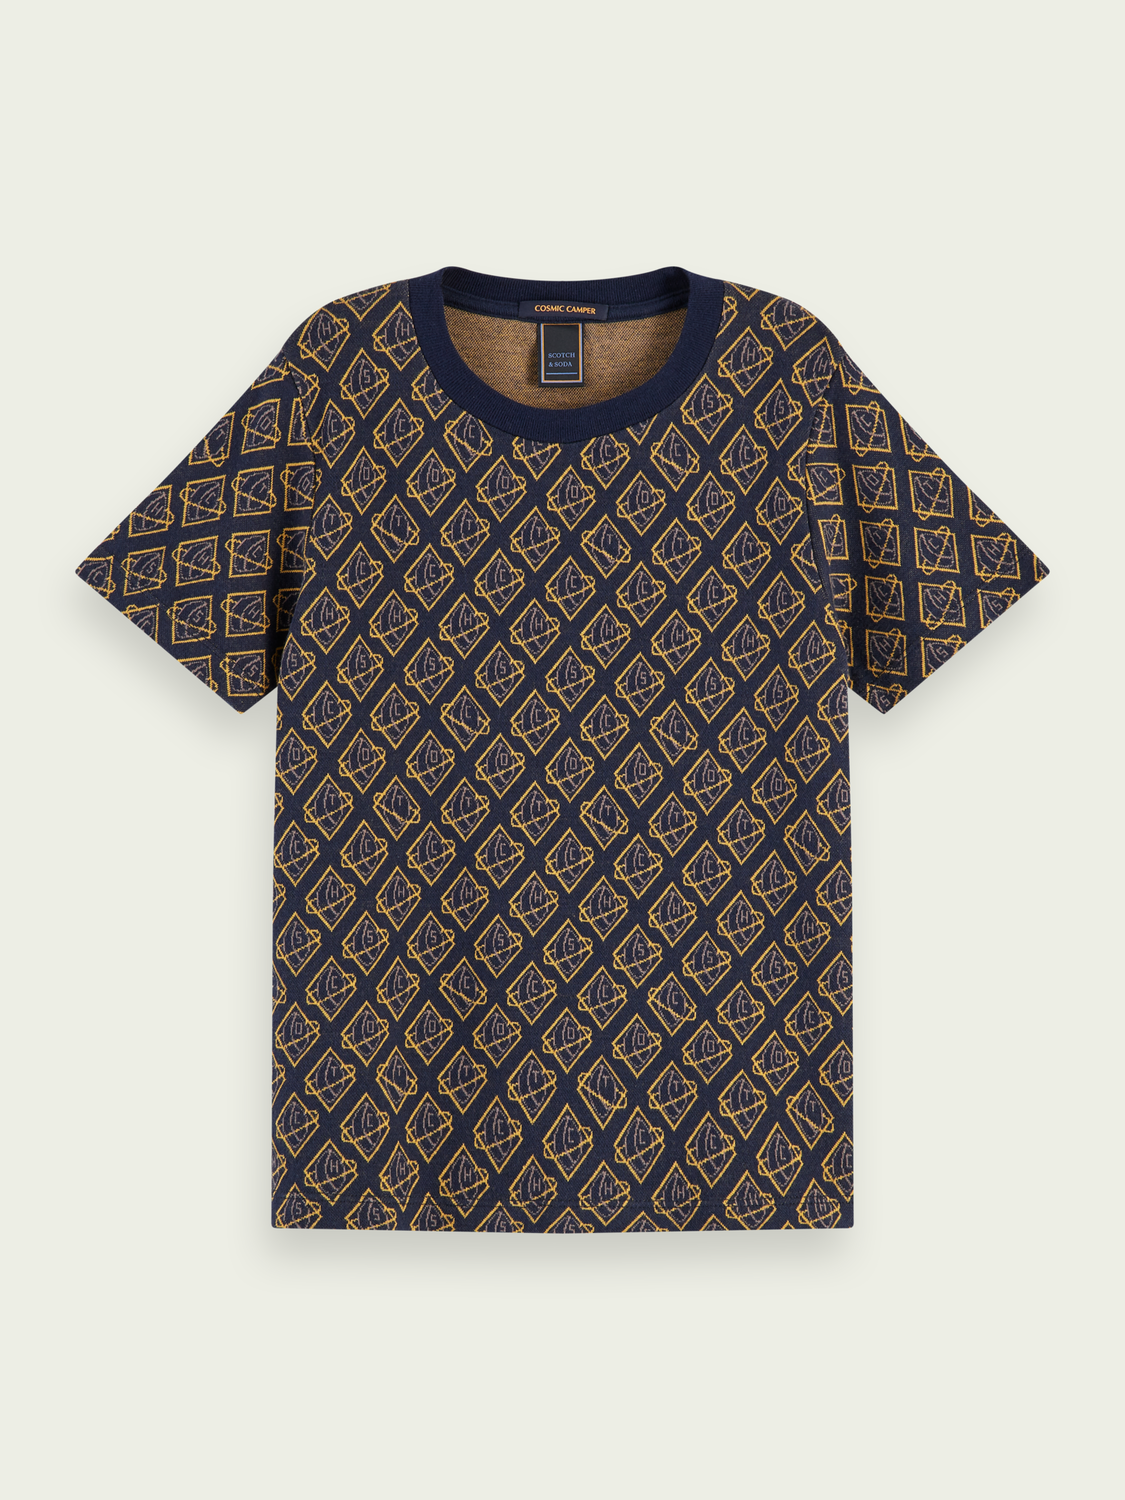 Boys Jacquard patterned short sleeve t-shirt